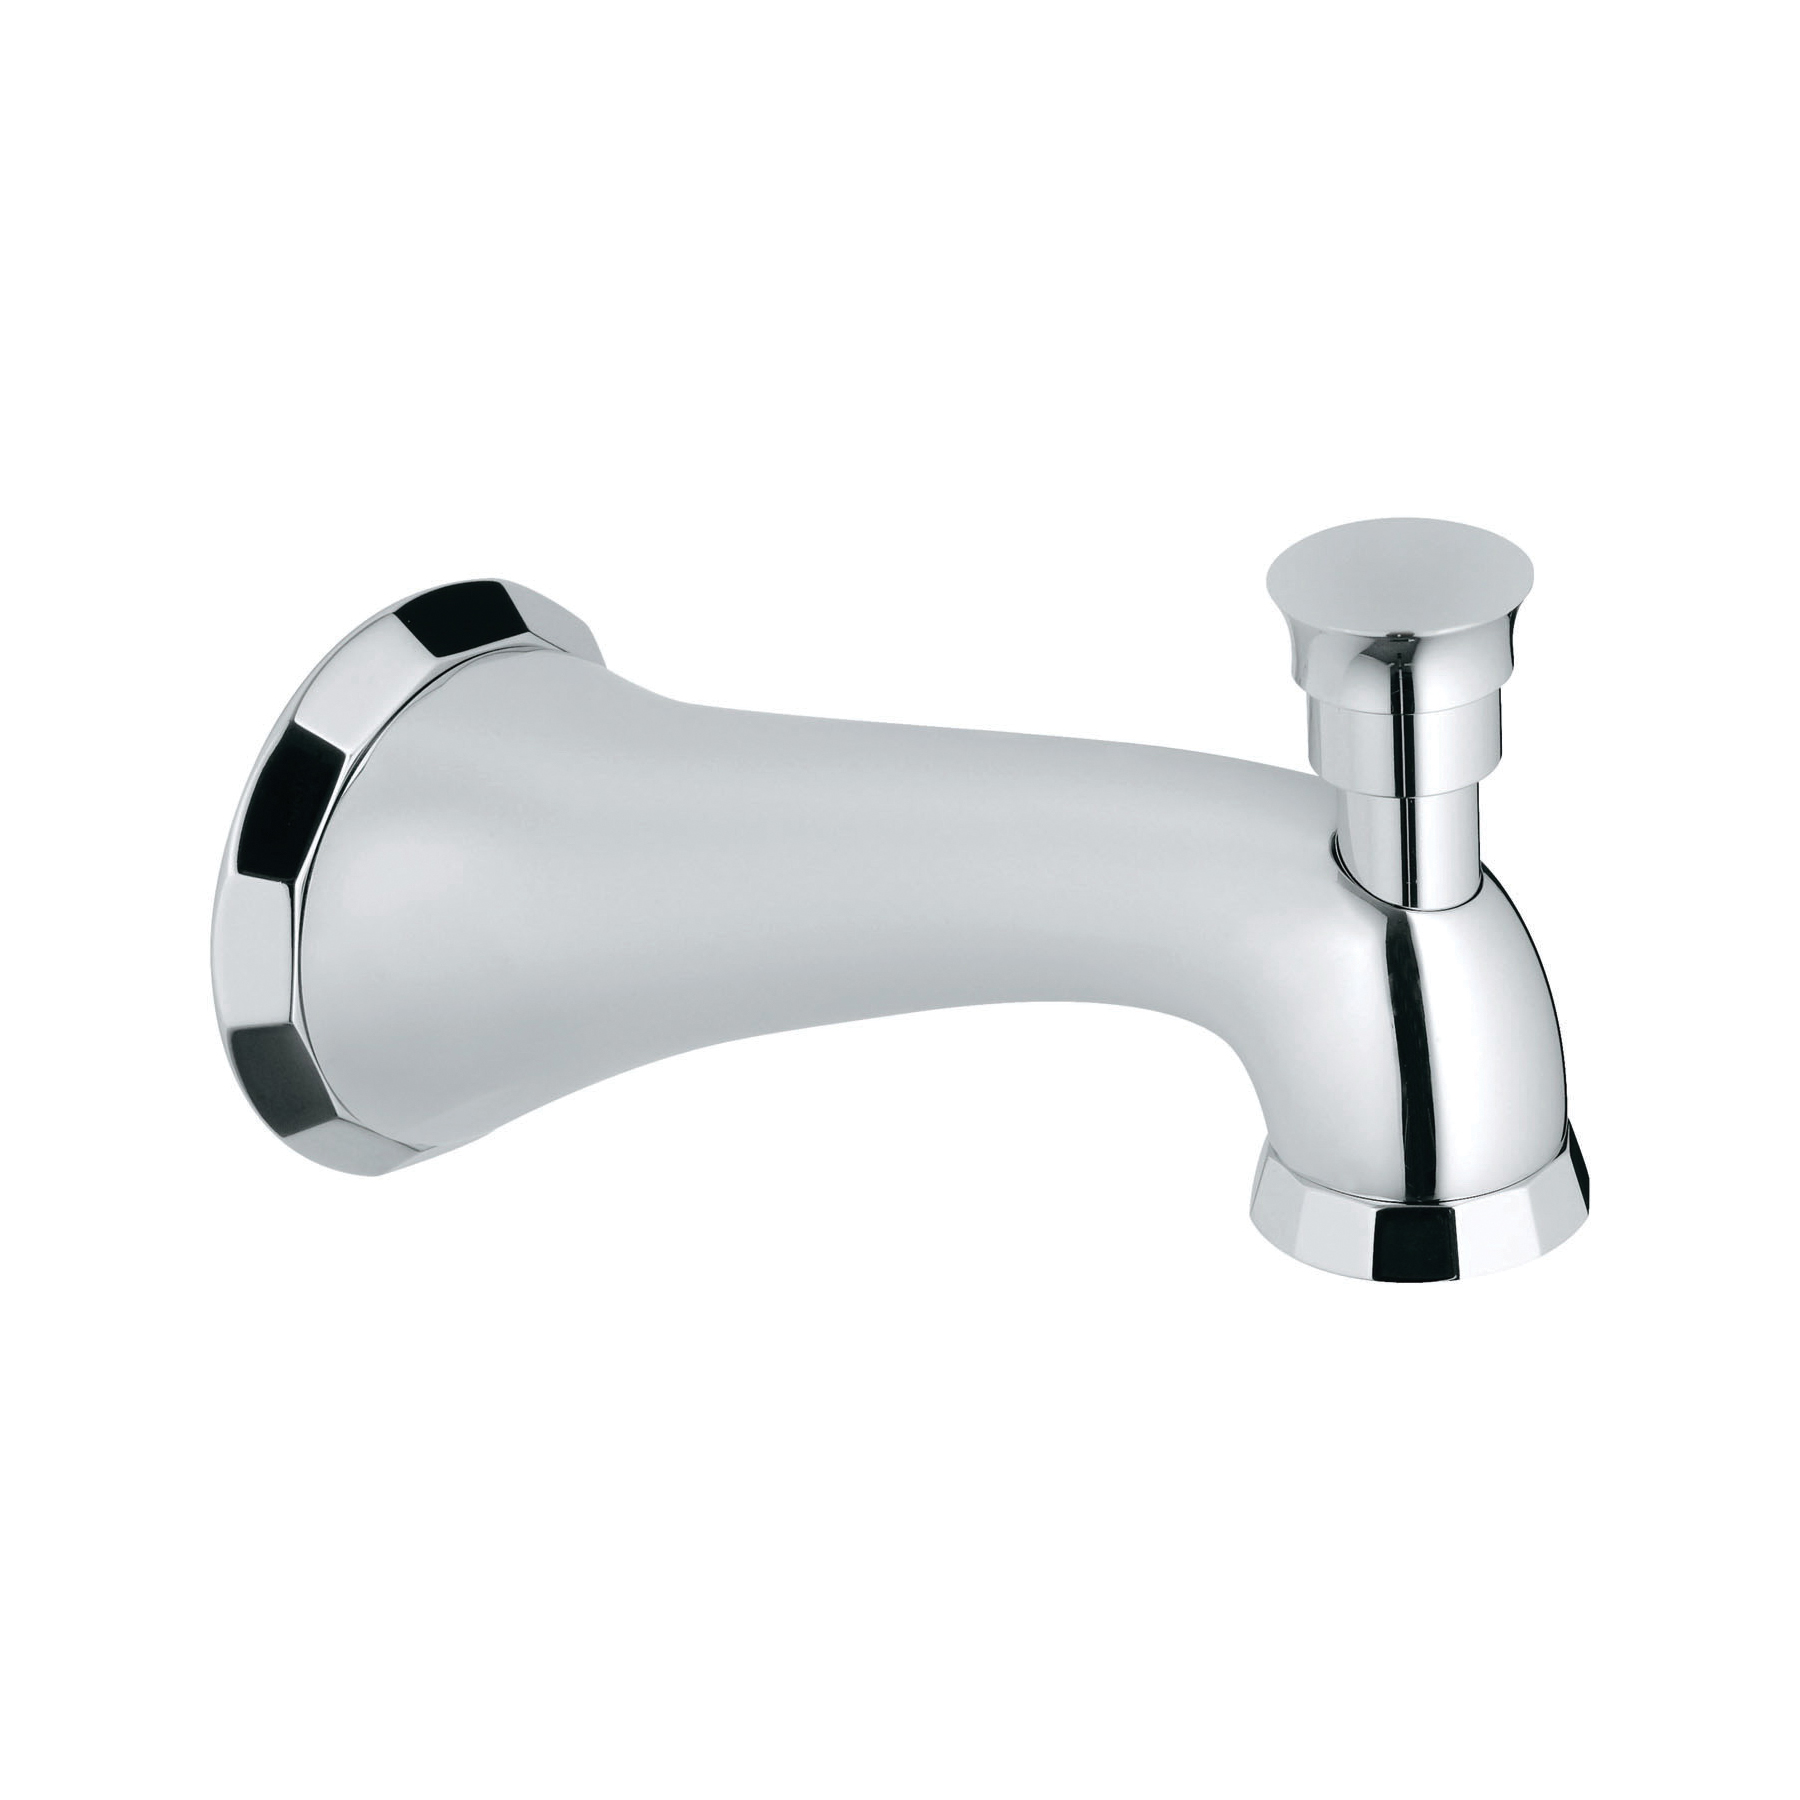 GROHE 13194000 Kensington Wall Mounted Tub Spout With Flow Control and Diverter, 13.2 gpm, 6 in Spout Reach, StarLight® Chrome, Import